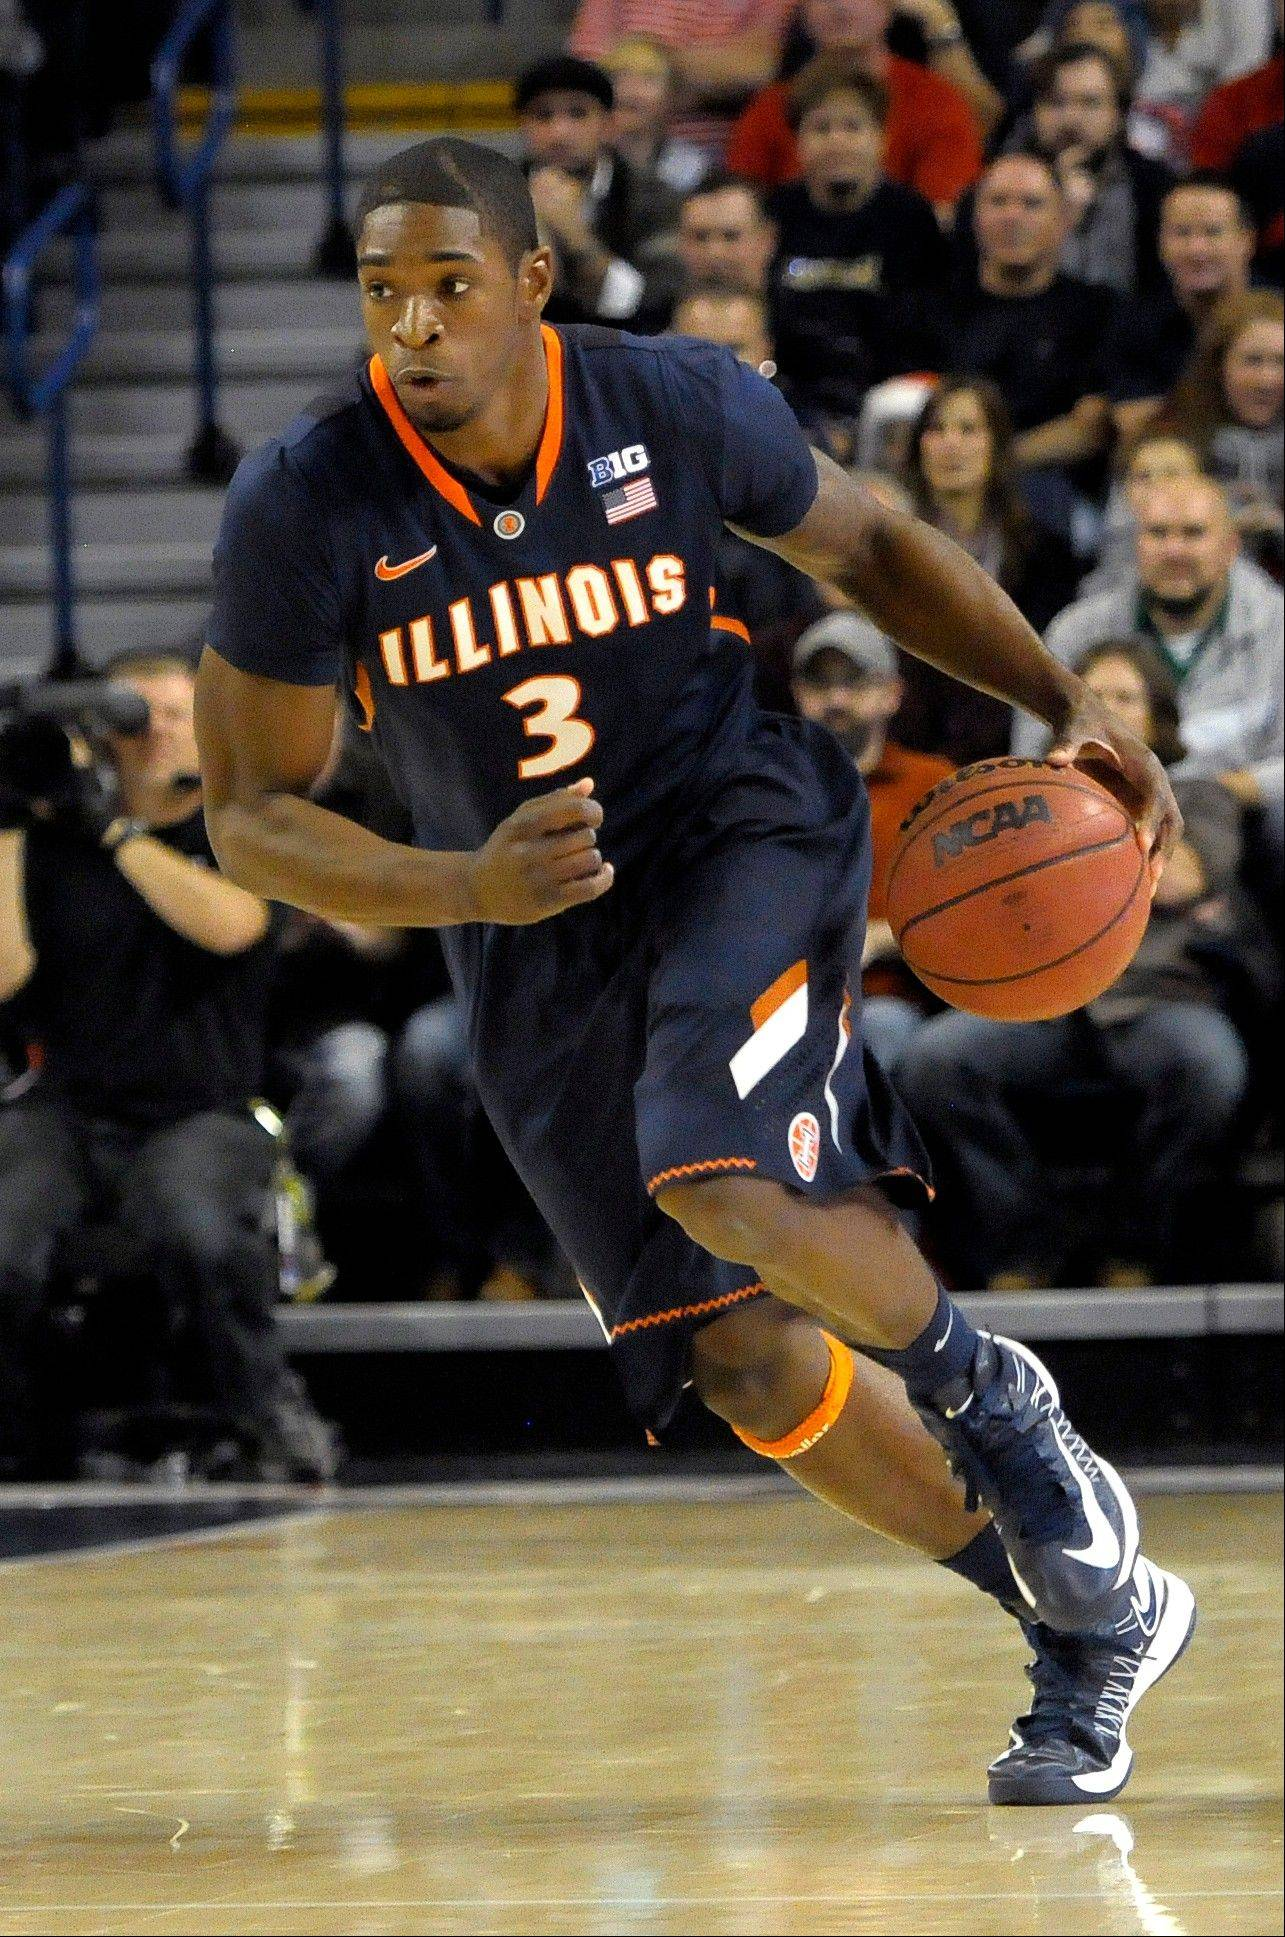 Illinois' Brandon Paul (3) drives down court against Gonzaga in the first half.